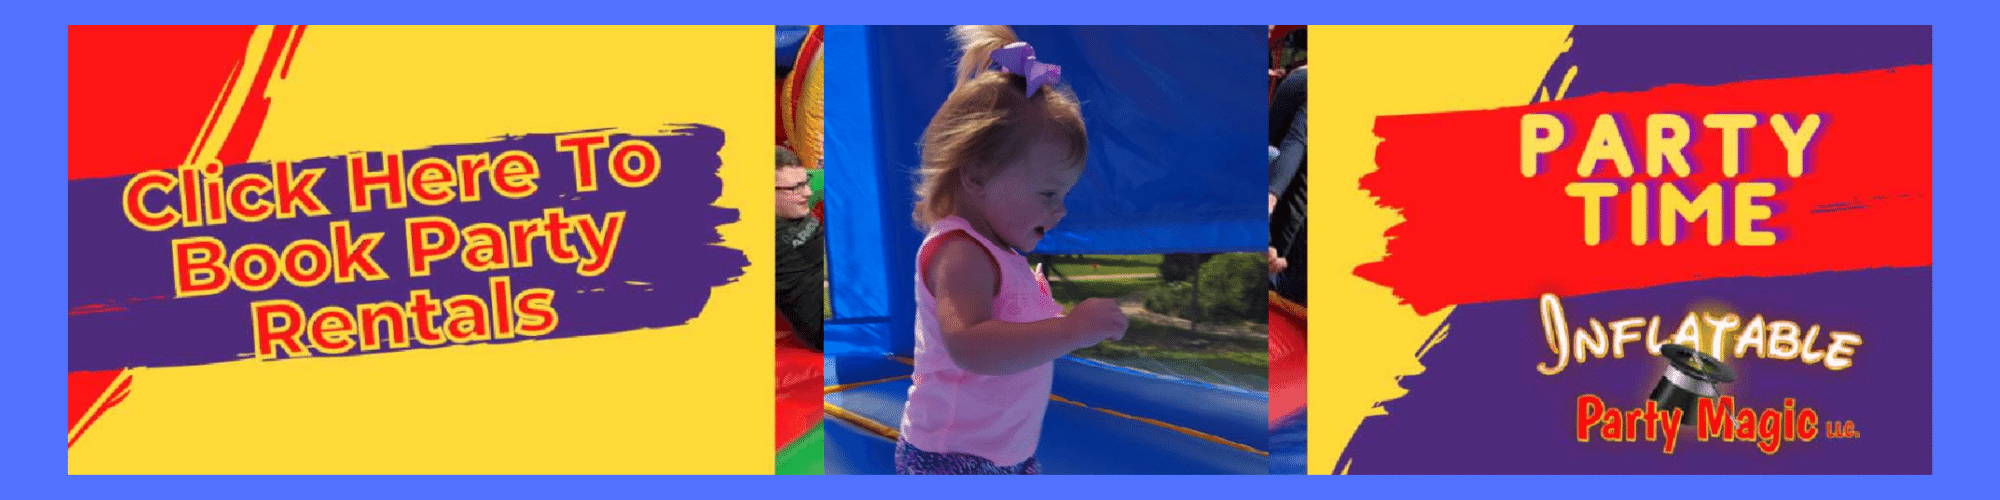 Keene TX Bounce House Rentals, Water Slide Rentals, and Party Rentals Book Now